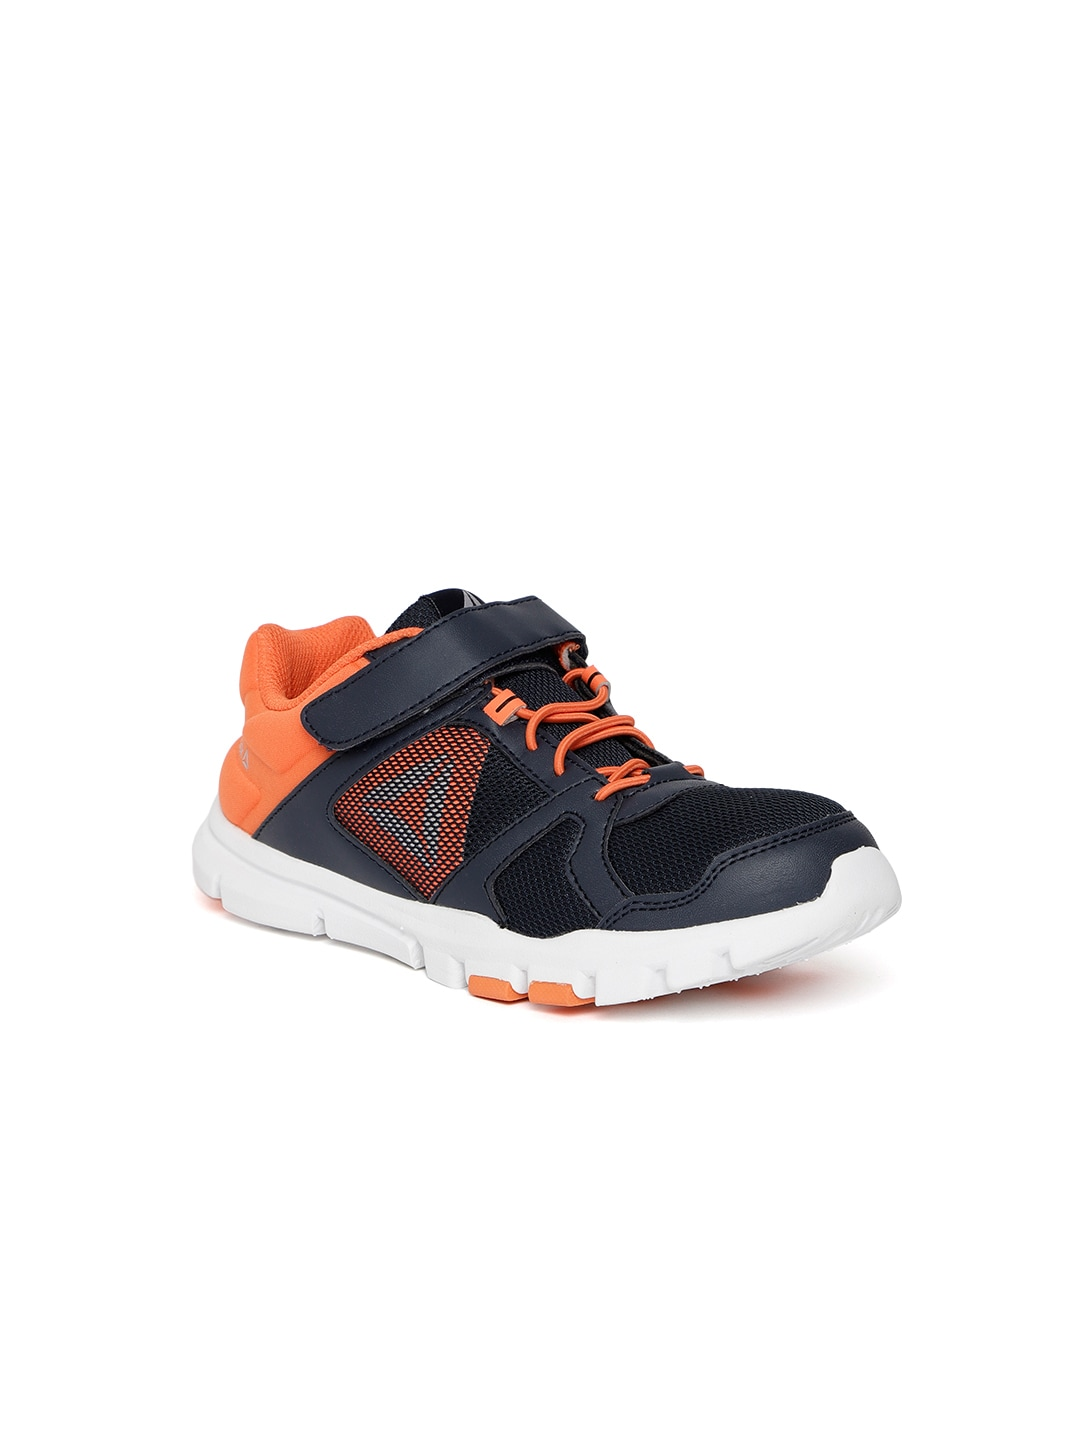 b3dd600c3181 Boys Sports Shoes - Buy Sports Shoes For Kids Online in India